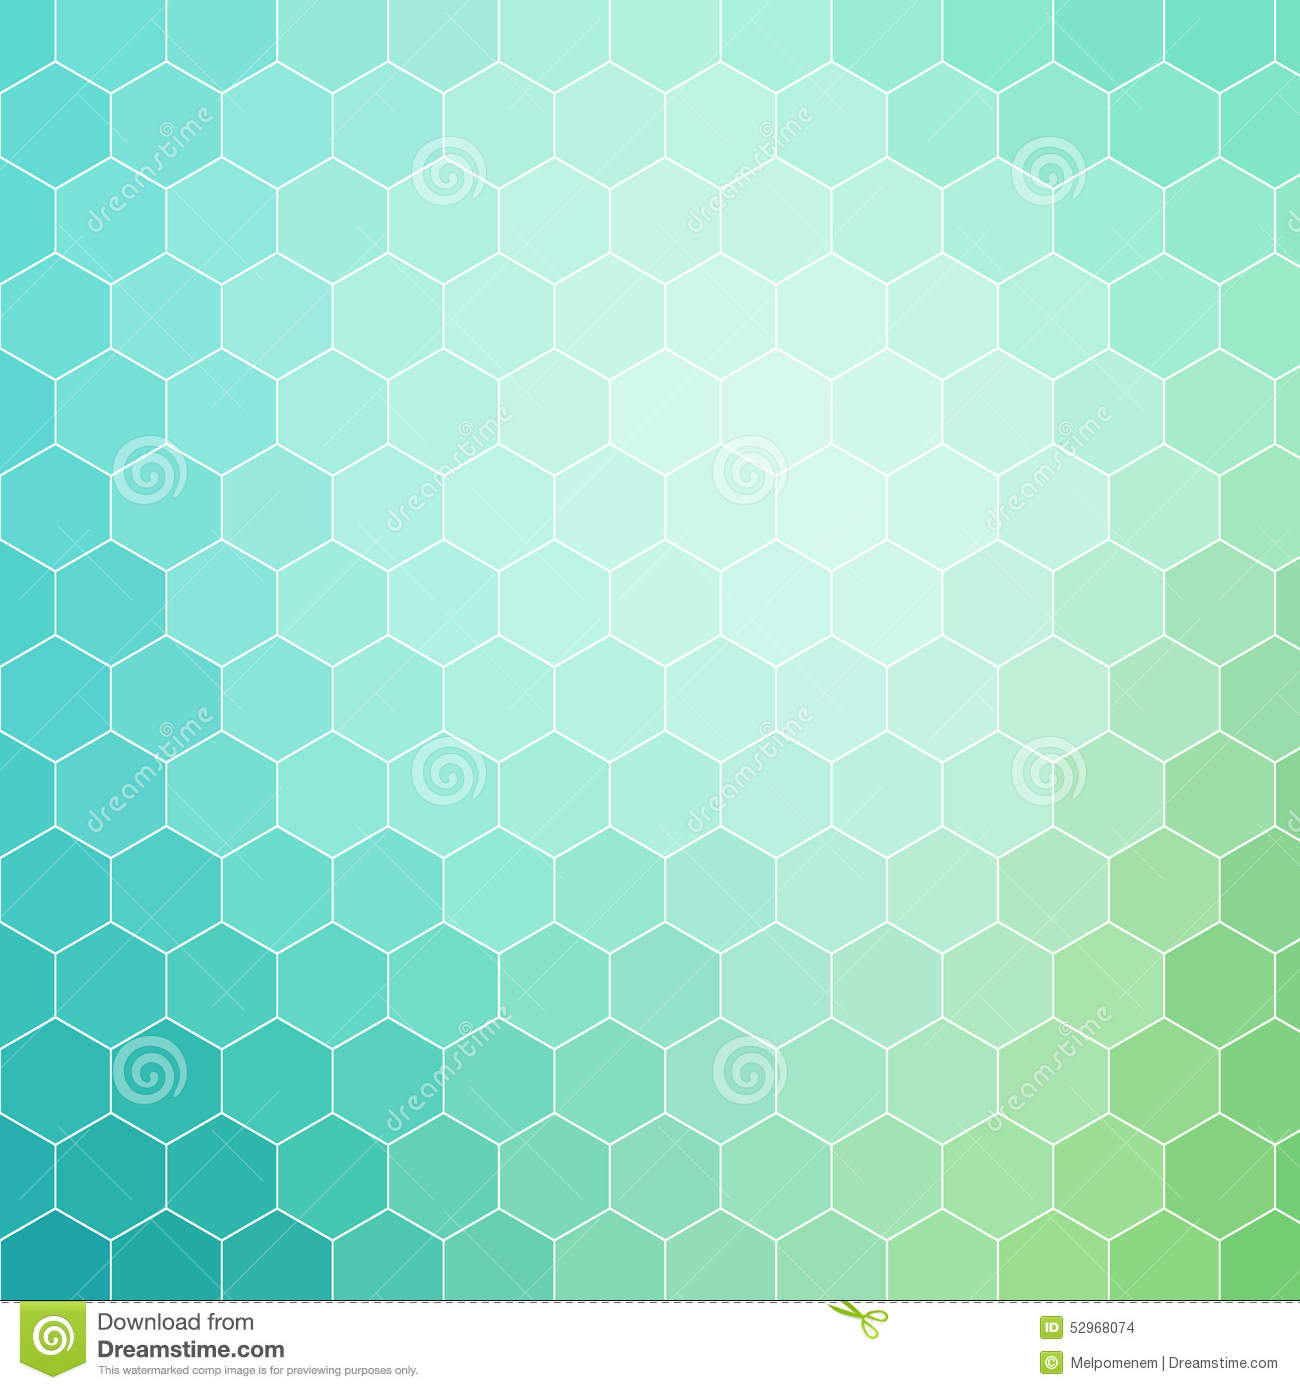 Blue Green Hexagon Pattern Background With White Outline Illustration 52968074